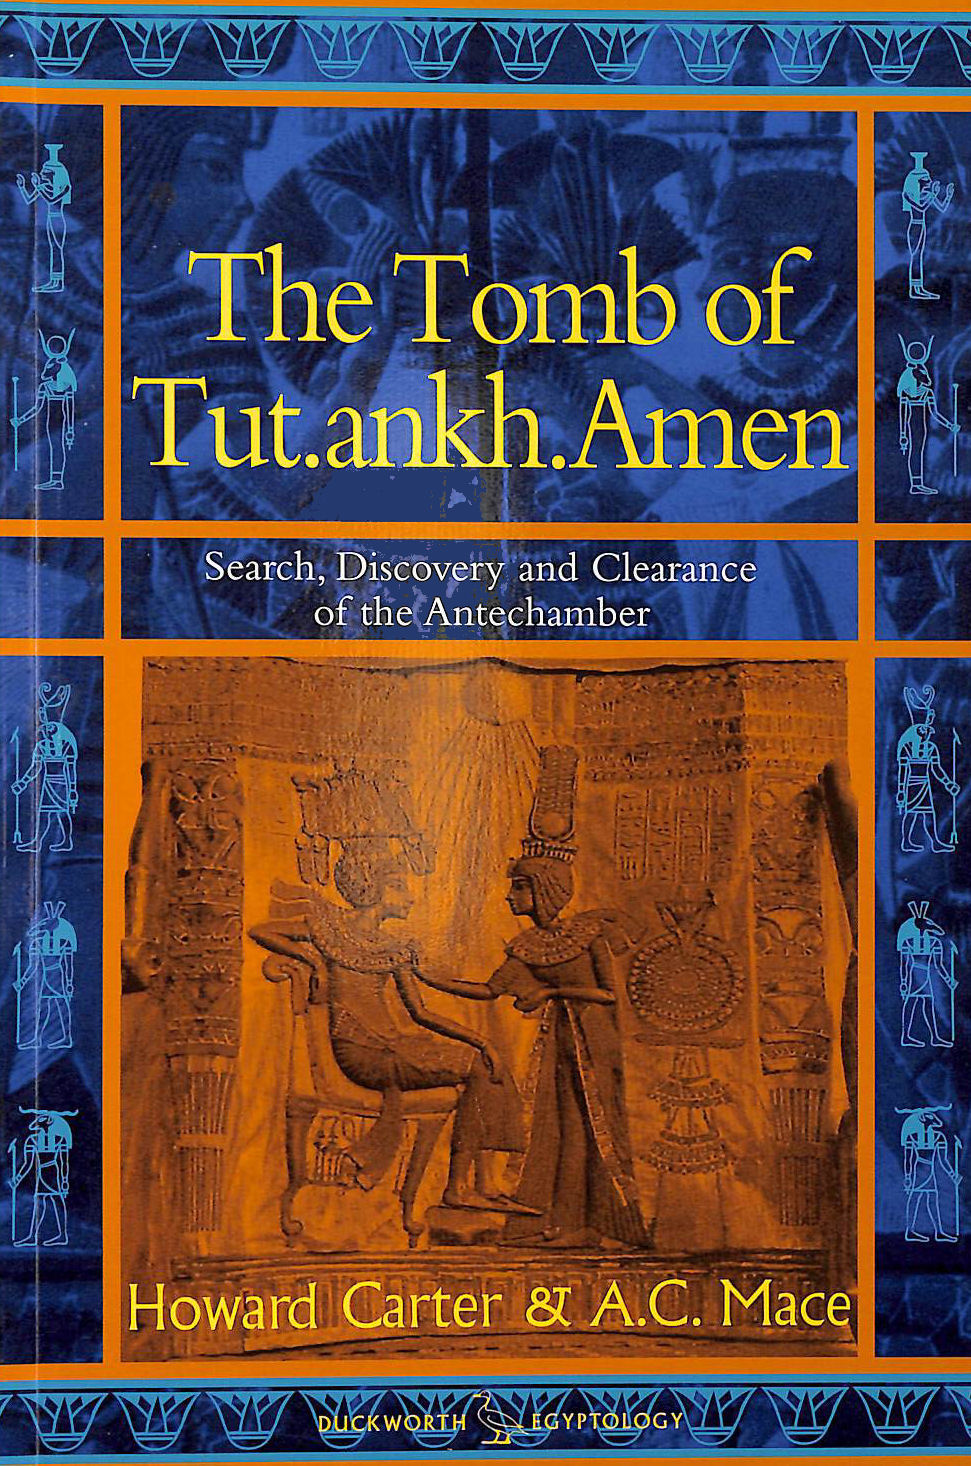 Image for The Tomb of Tut.ankh.Amen - Volume 1 Search, Discovery and the Clearance of the Antechamber